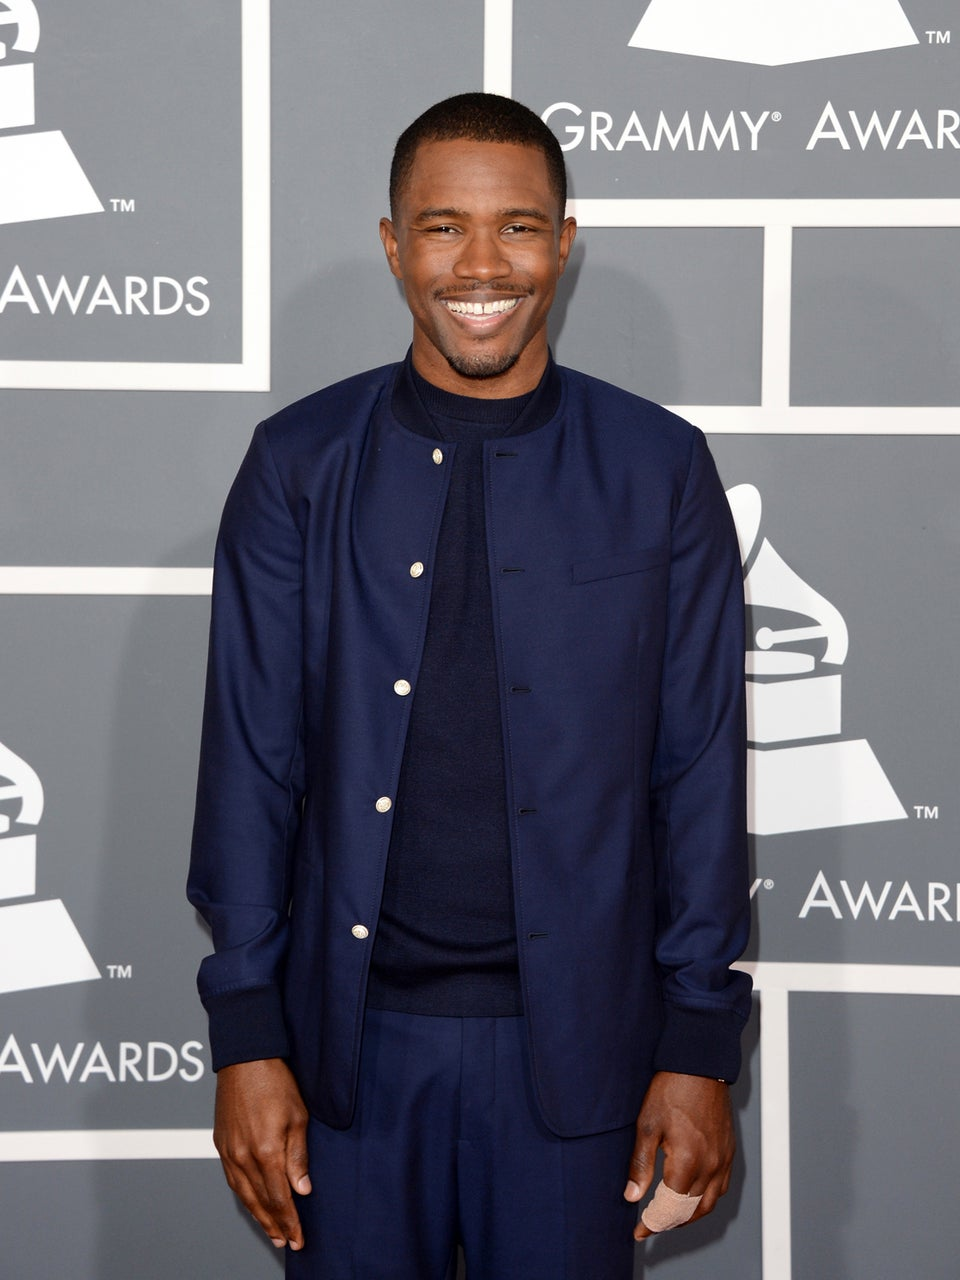 Frank Ocean Sued For Backing Out of Chipotle Ad